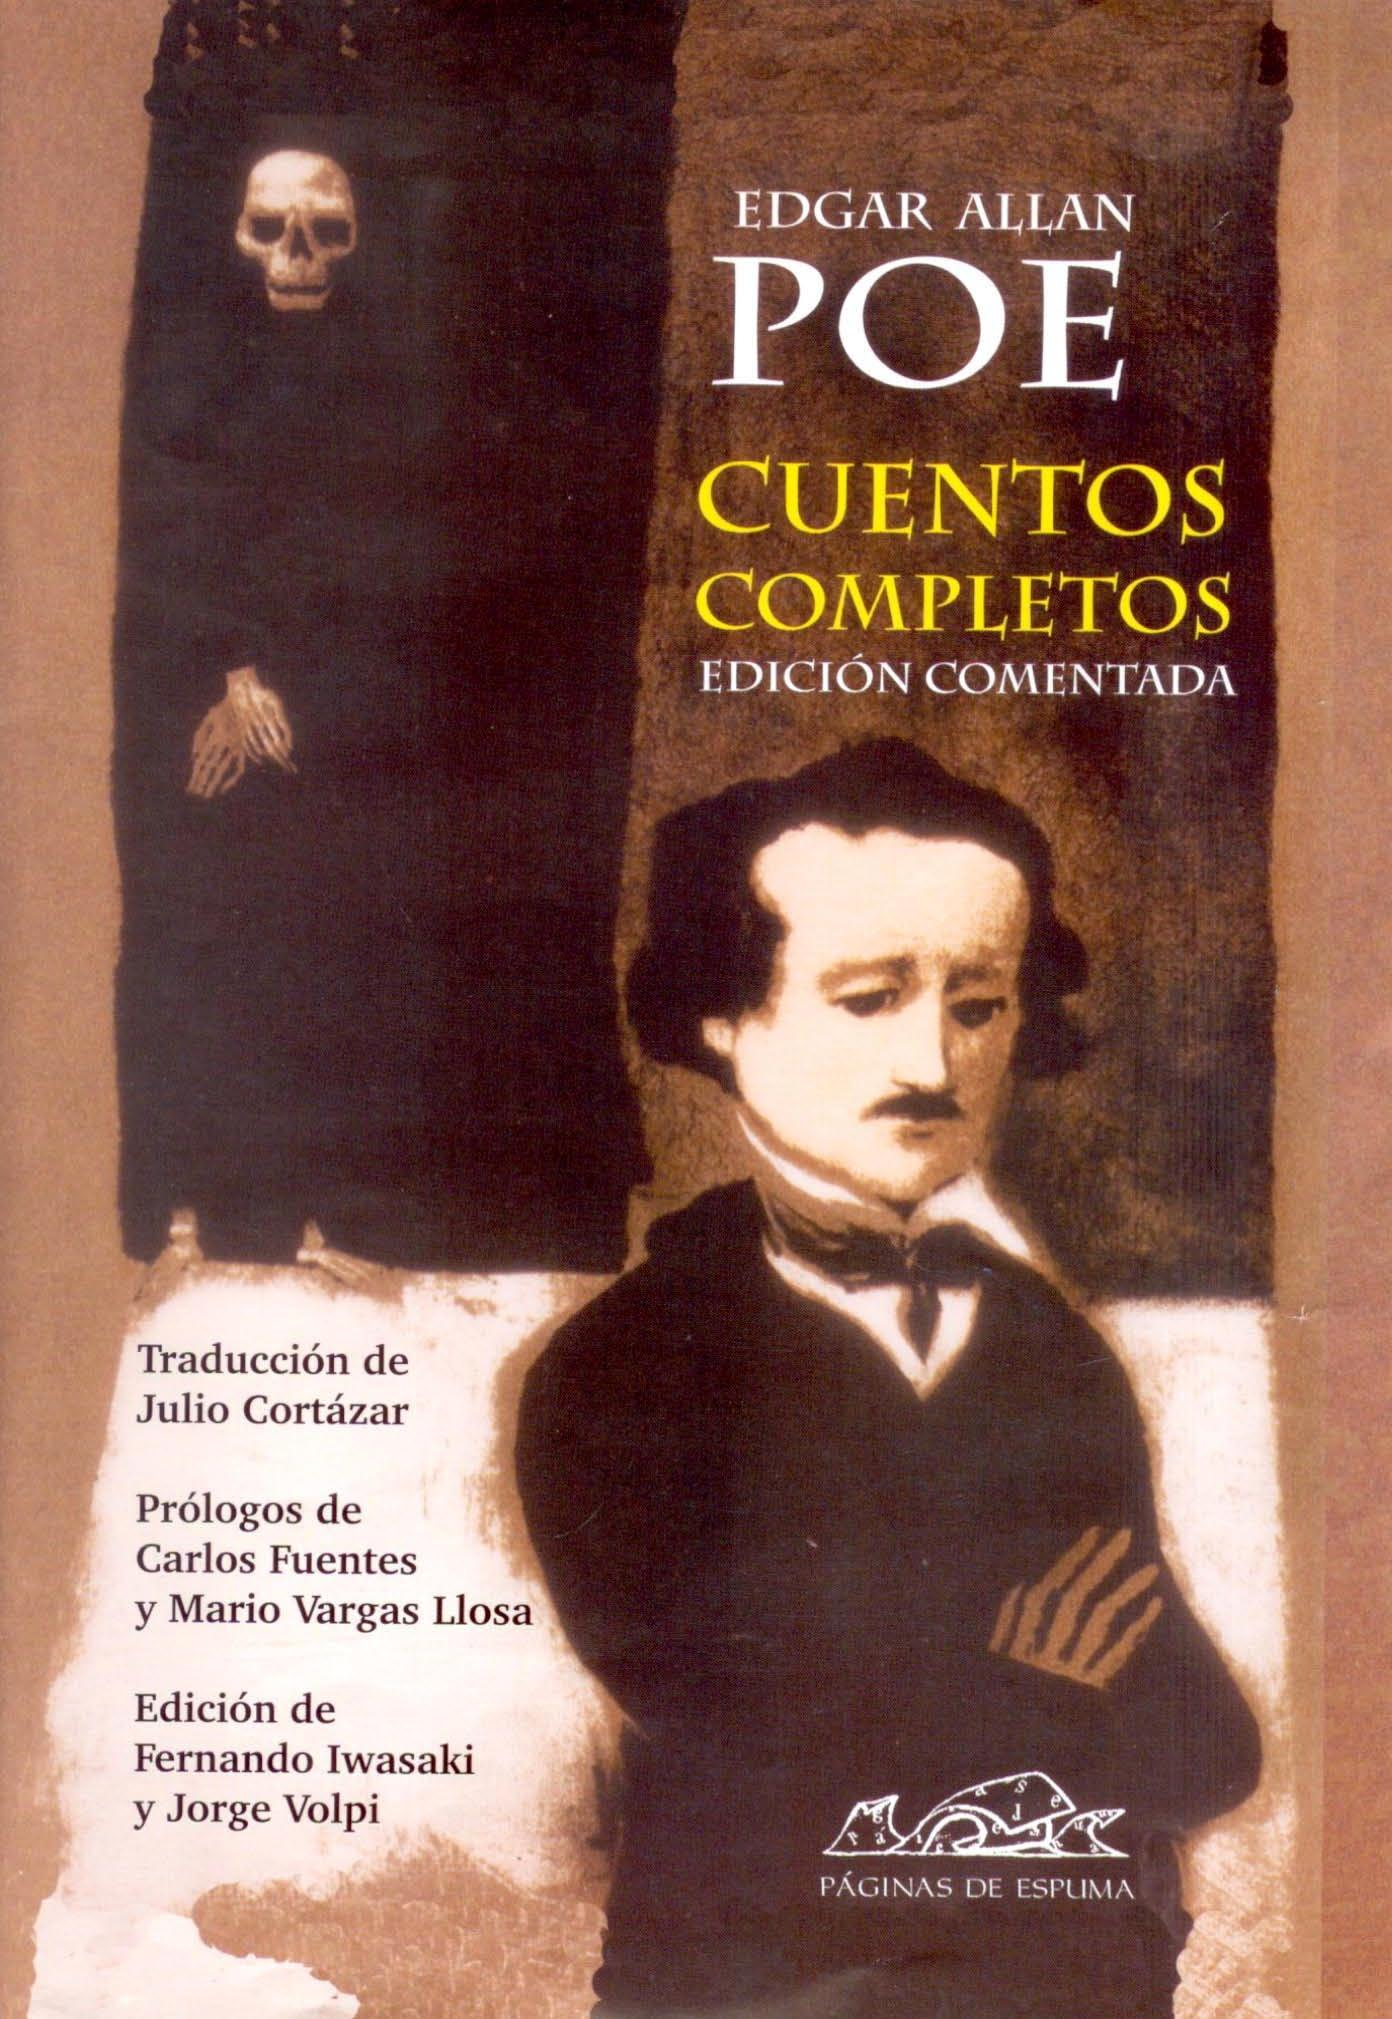 Cuentos-Completos-de-Edgar-Allan-Poe-book-tag-halloween-nominaciones-interesantes-literatura-libros-personajes-opinion-blogs-blogger